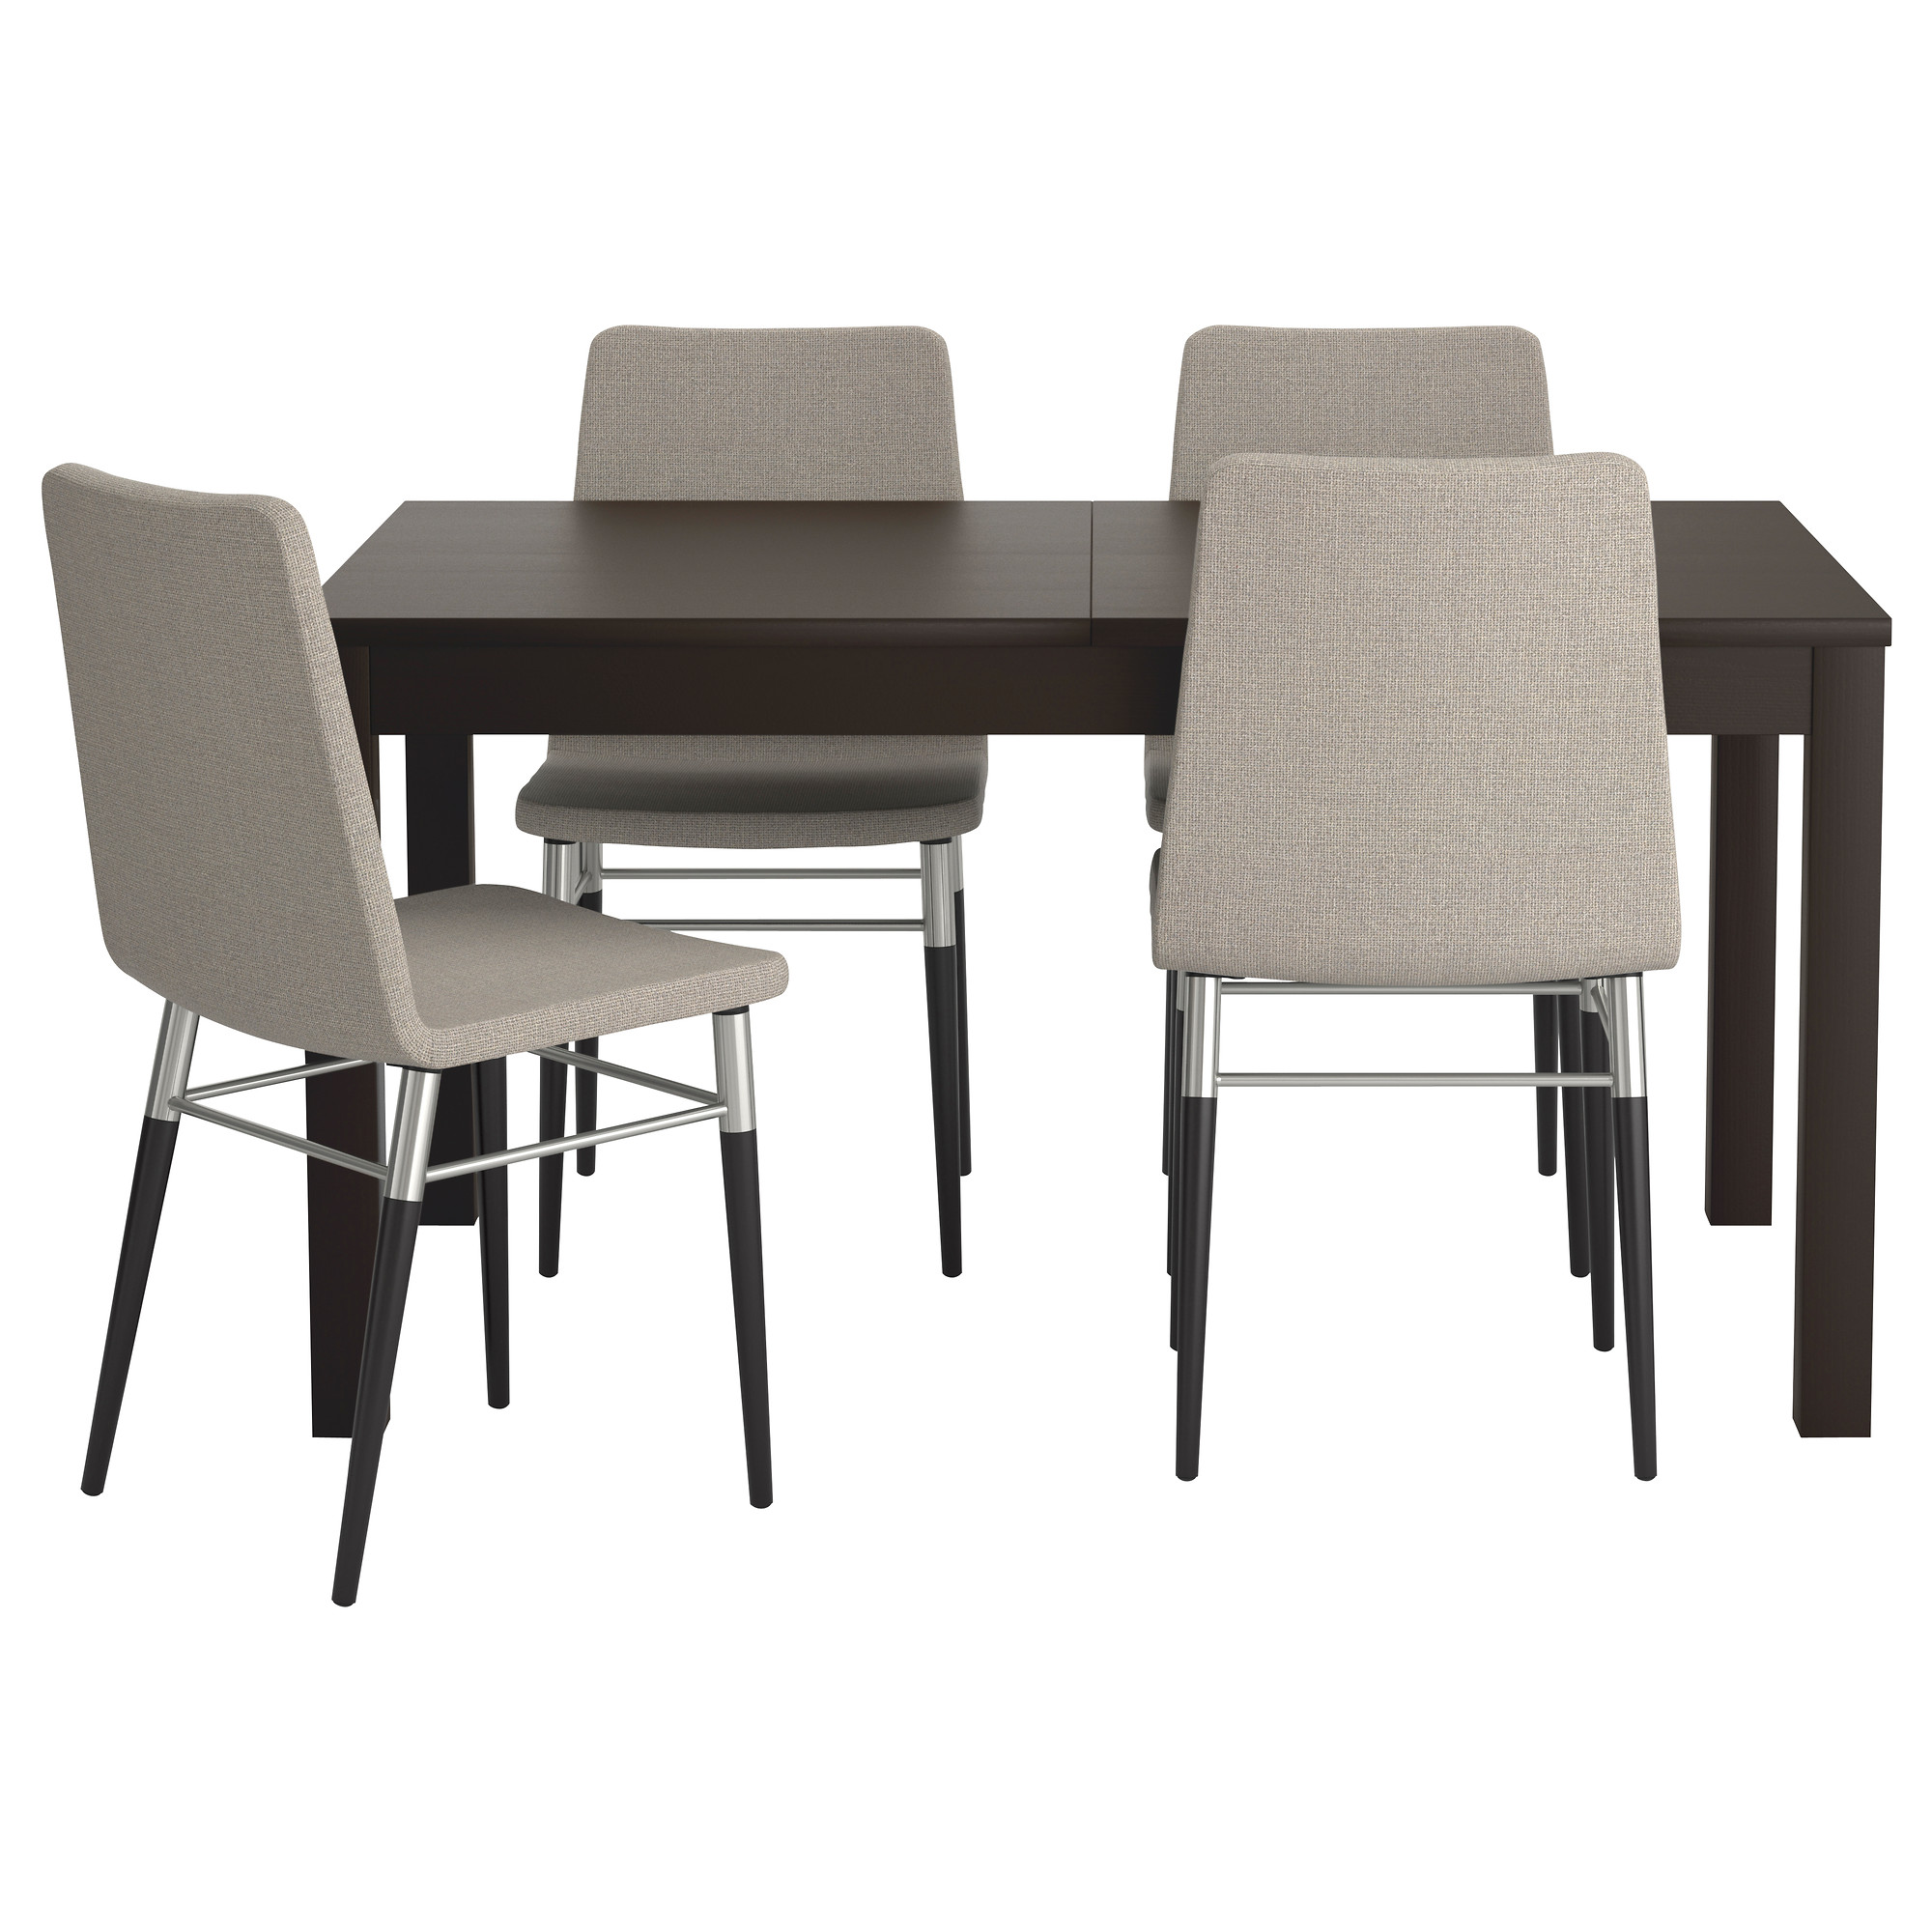 dining table and chairs bjursta / preben table and 4 chairs, brown-black, tenö light gray length XQNIXBU